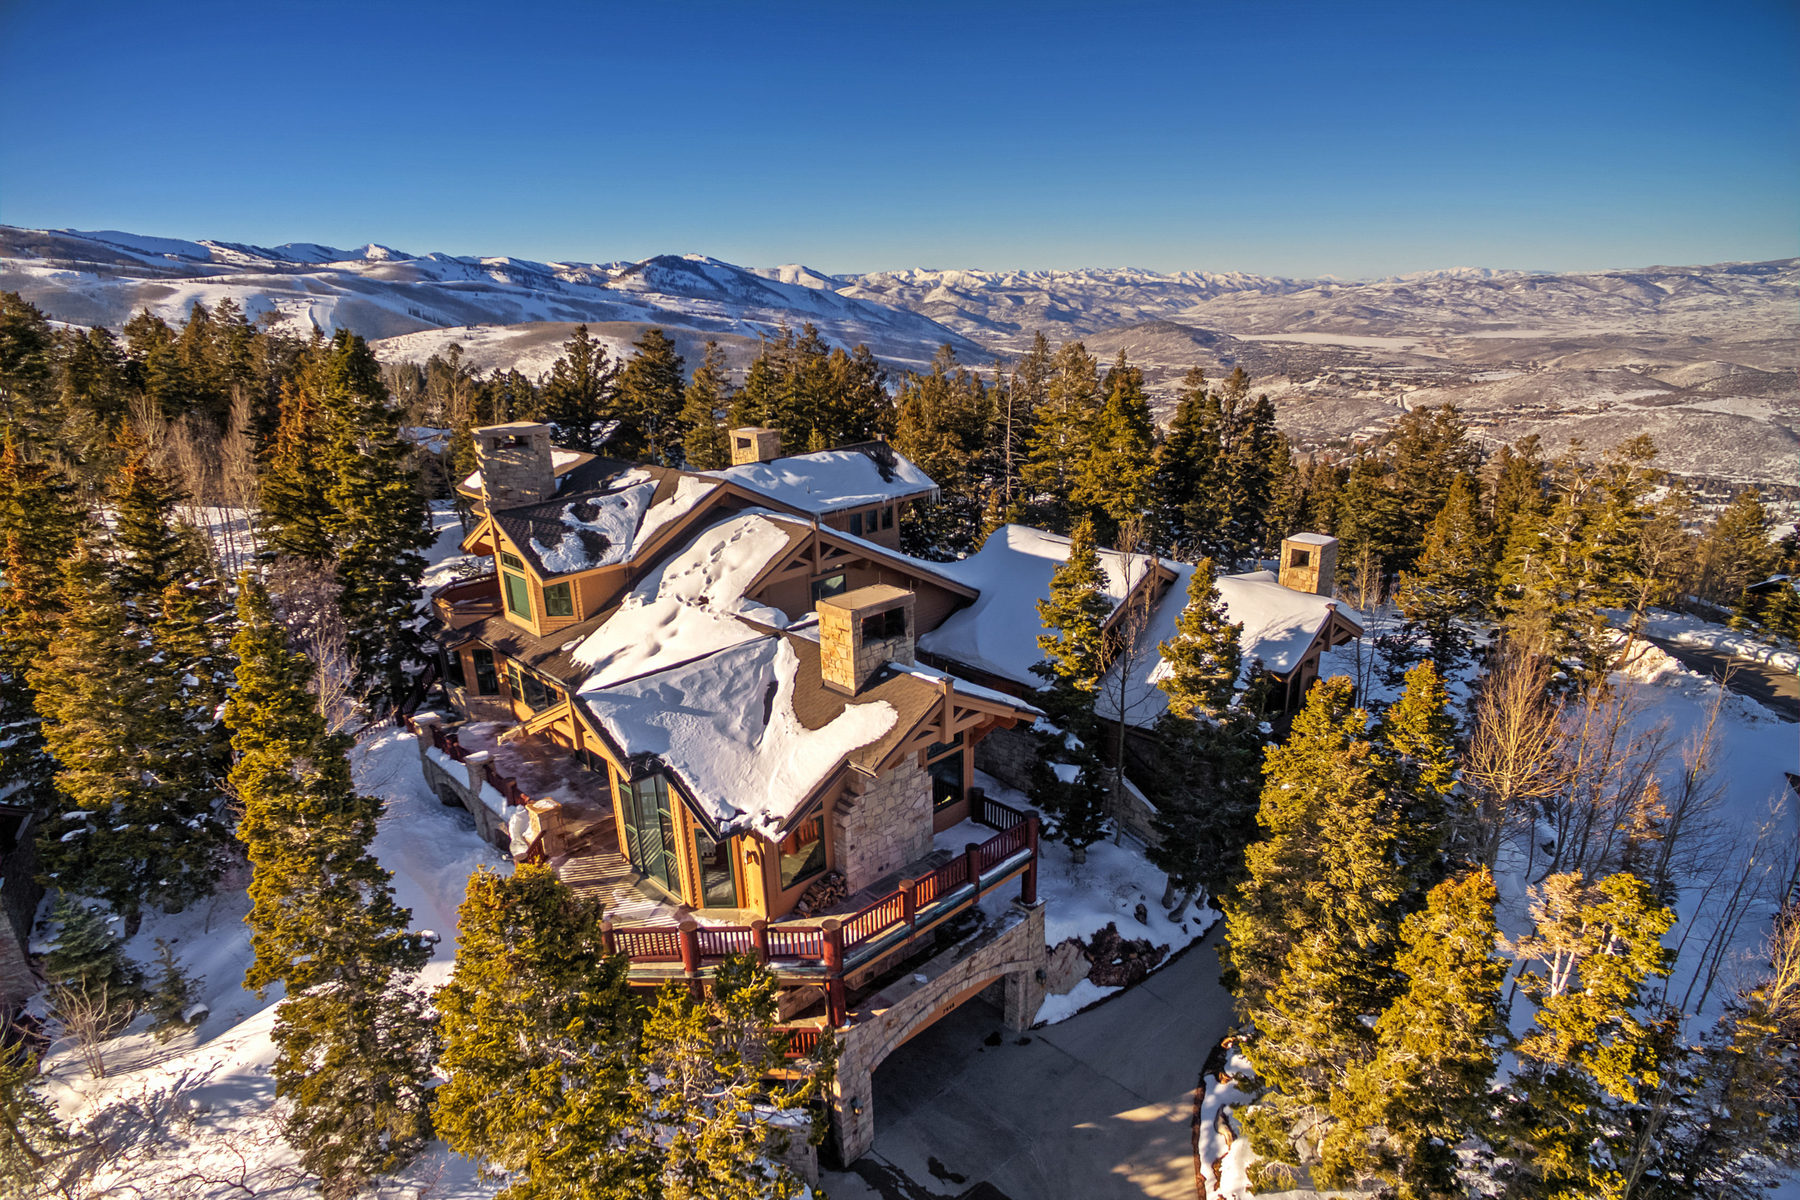 Casa Unifamiliar por un Venta en Privacy, Luxury, Views and Ultimate Ski access in the Gated Community of Bald Ea 7948 Red Tail Ct Park City, Utah, 84060 Estados Unidos